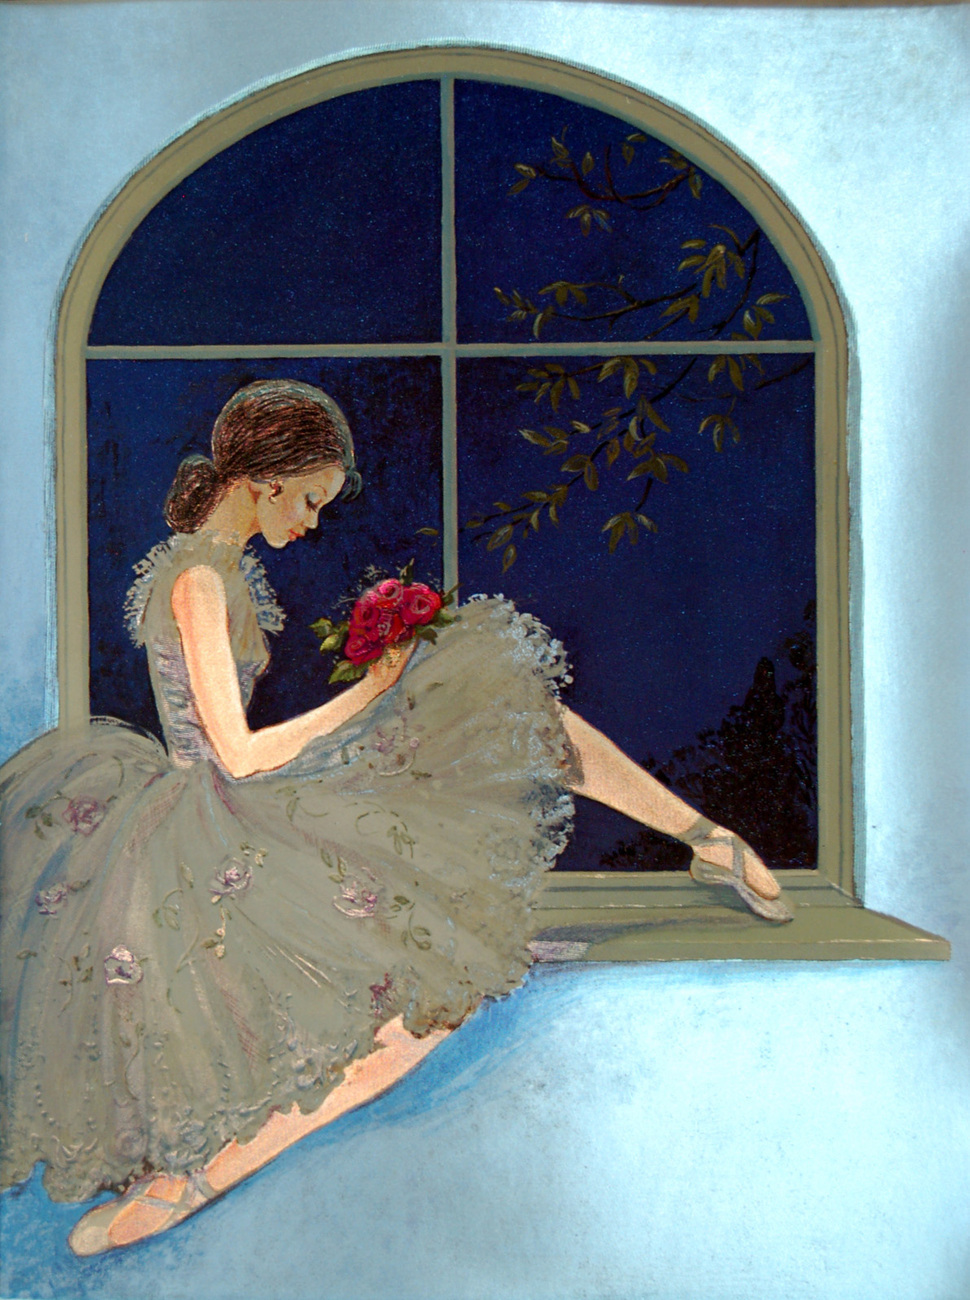 Ballerina by Window (Dufex Foil Print #152882)